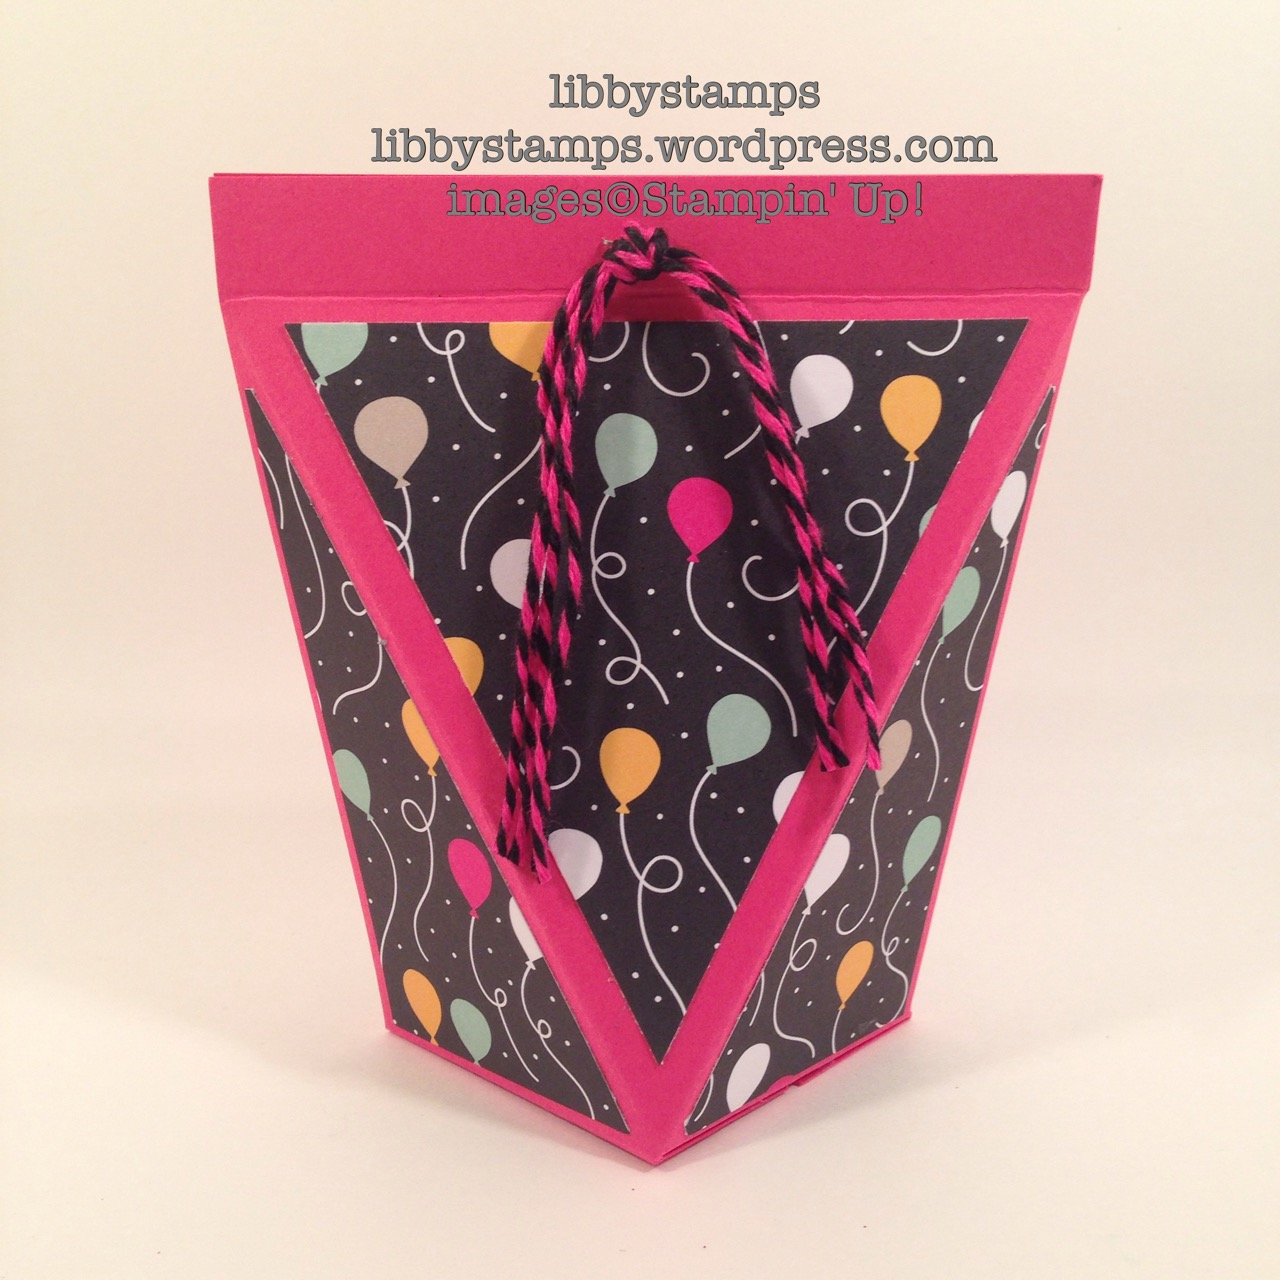 libbystamps, stampin' up, Pomp & Circumstance, Simply Scored, Stampin' Pierce Mat, Self-Close Box, Fringe Scissors, It's My Party DSP, Baker's Twine Combo